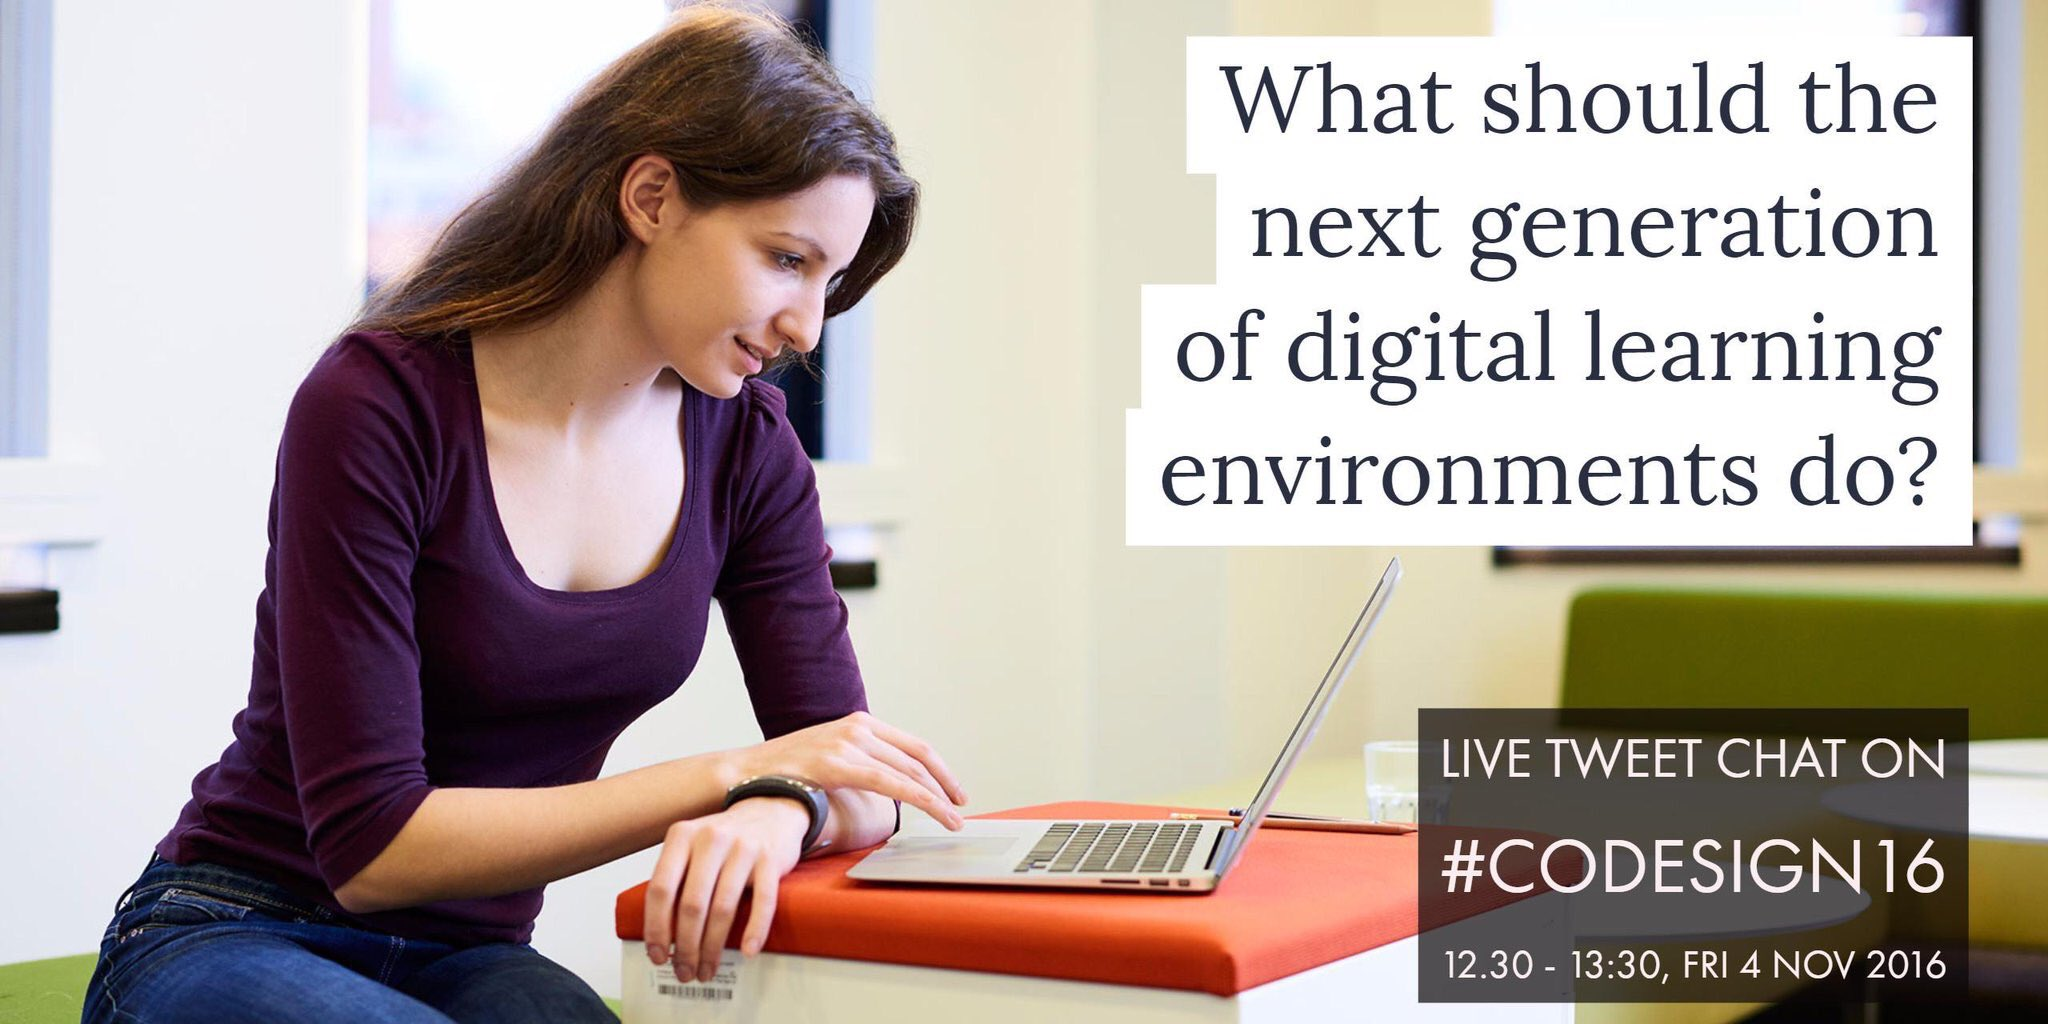 Good afternoon everyone and welcome to our live tweet chat on the next generation of learning environments! #codesign16 https://t.co/B2dH4lekc1